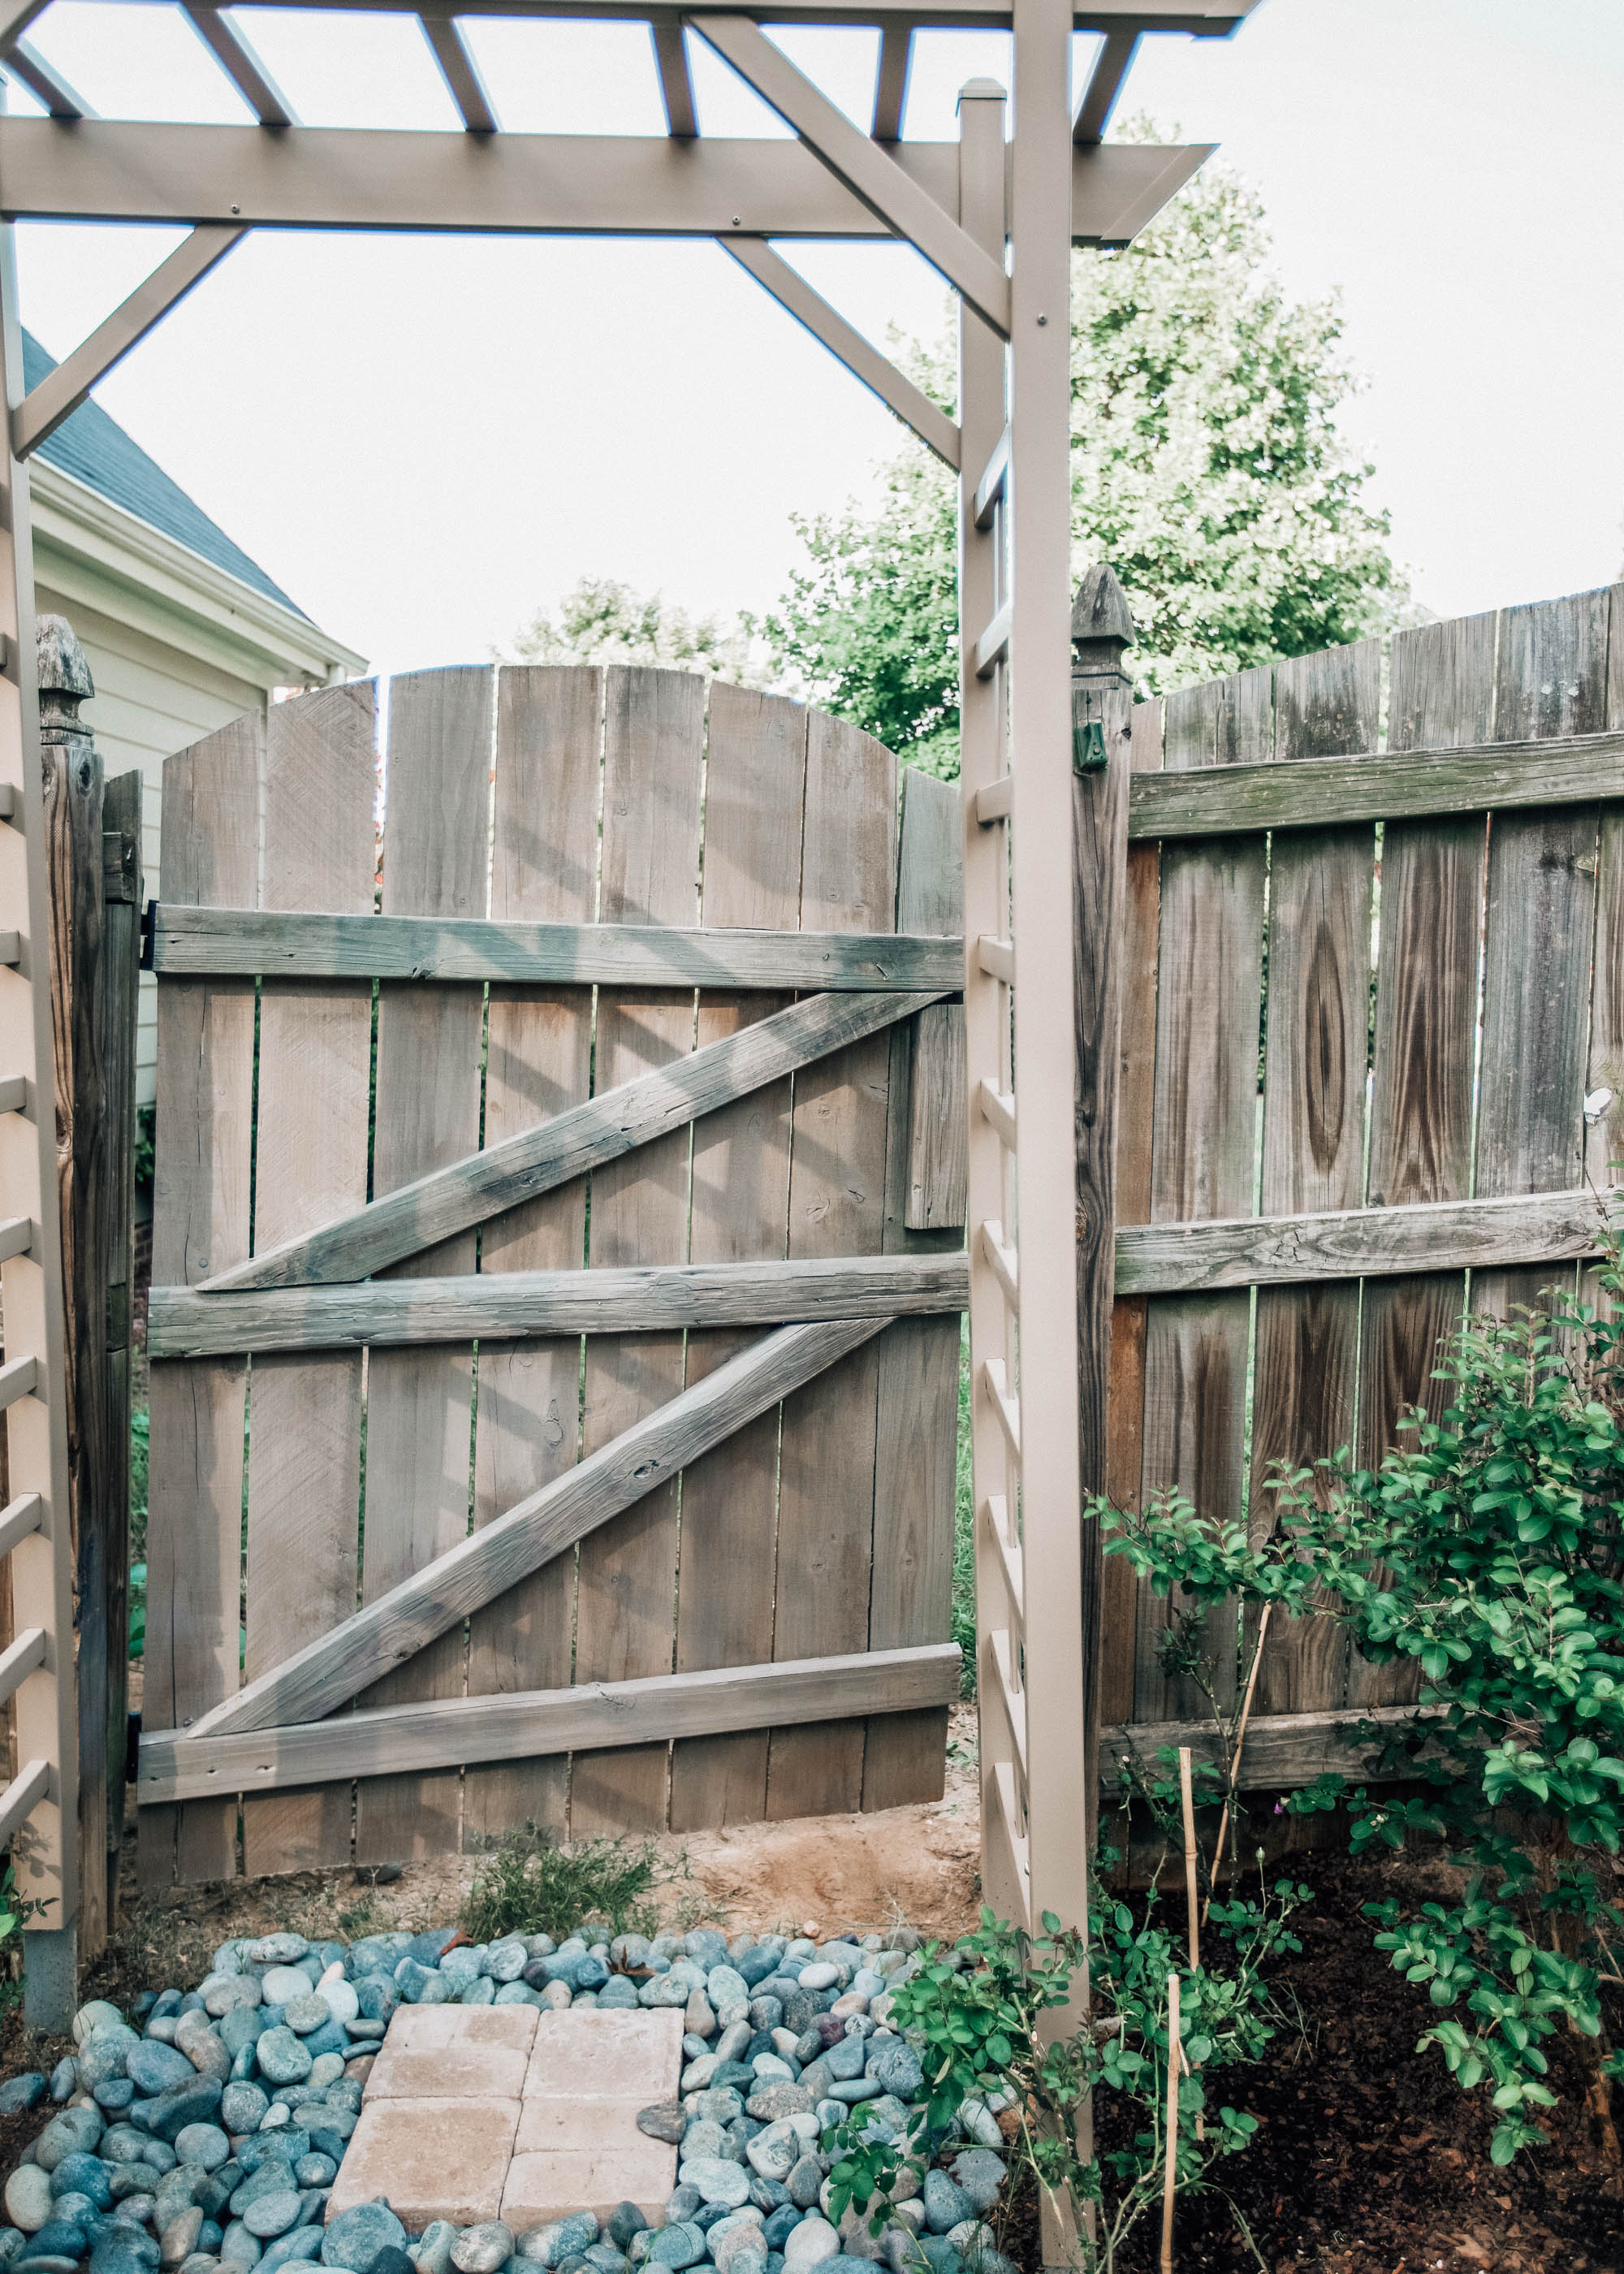 A New Landscaping Project: Staining Our Backyard Fence